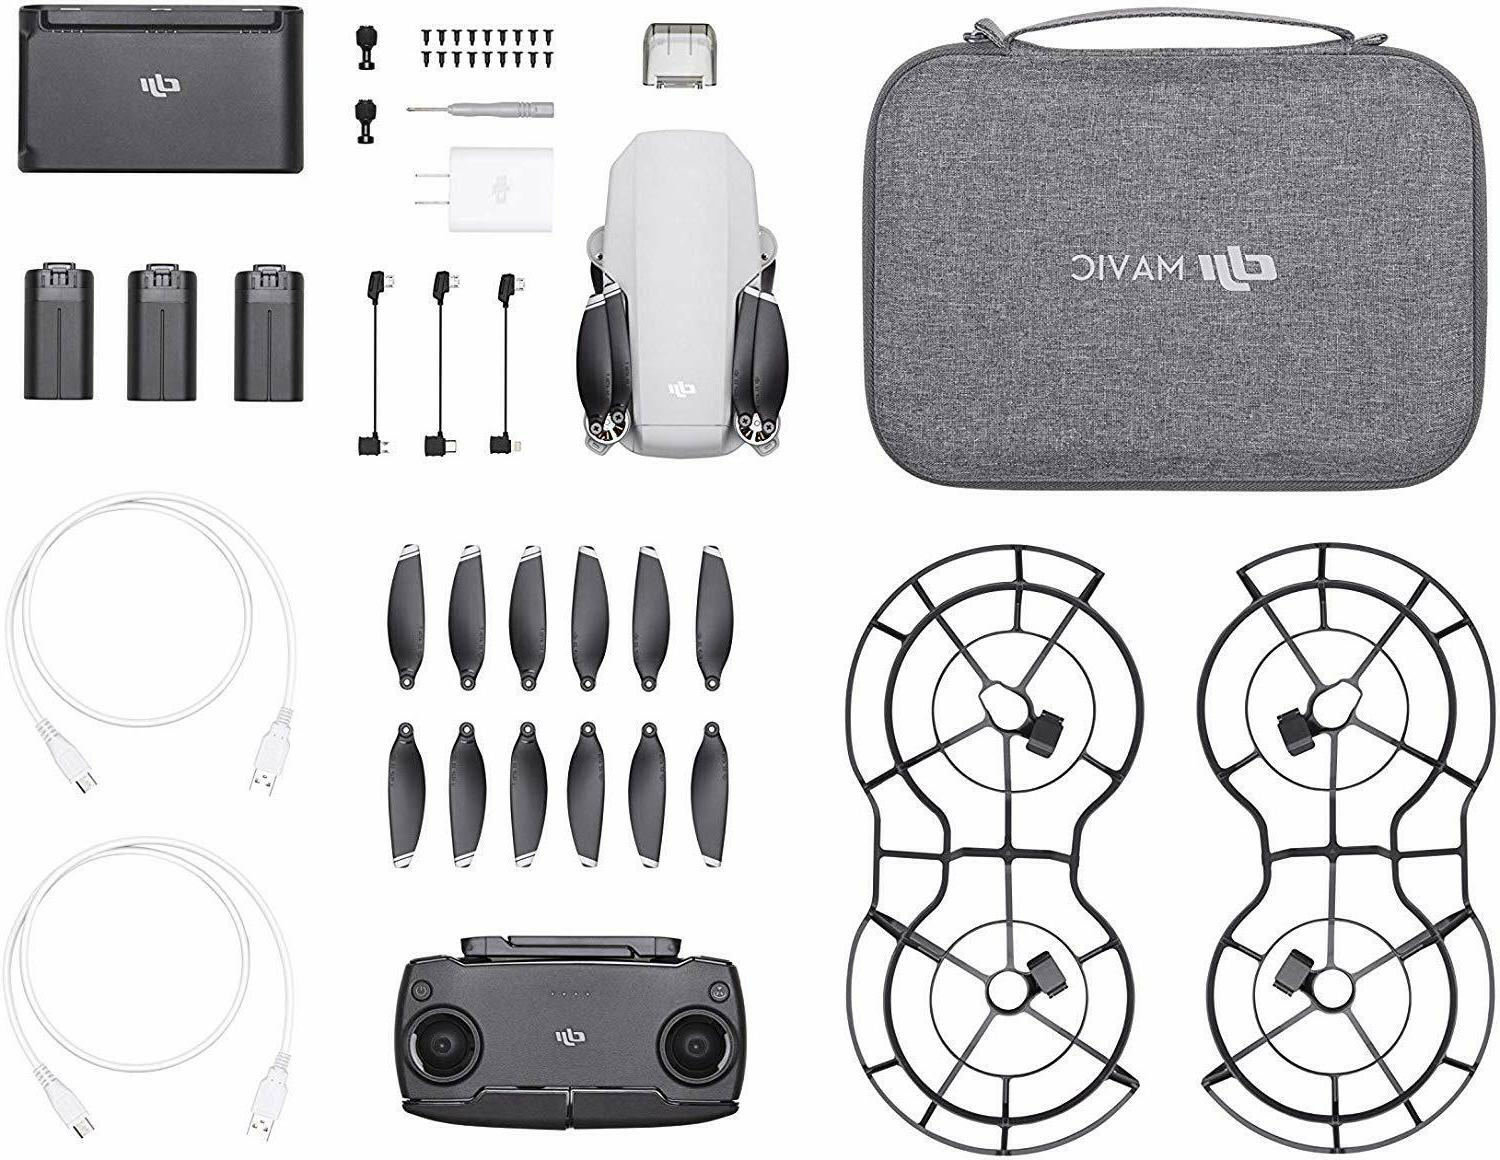 DJI Mini Fly More - Drone with Pro